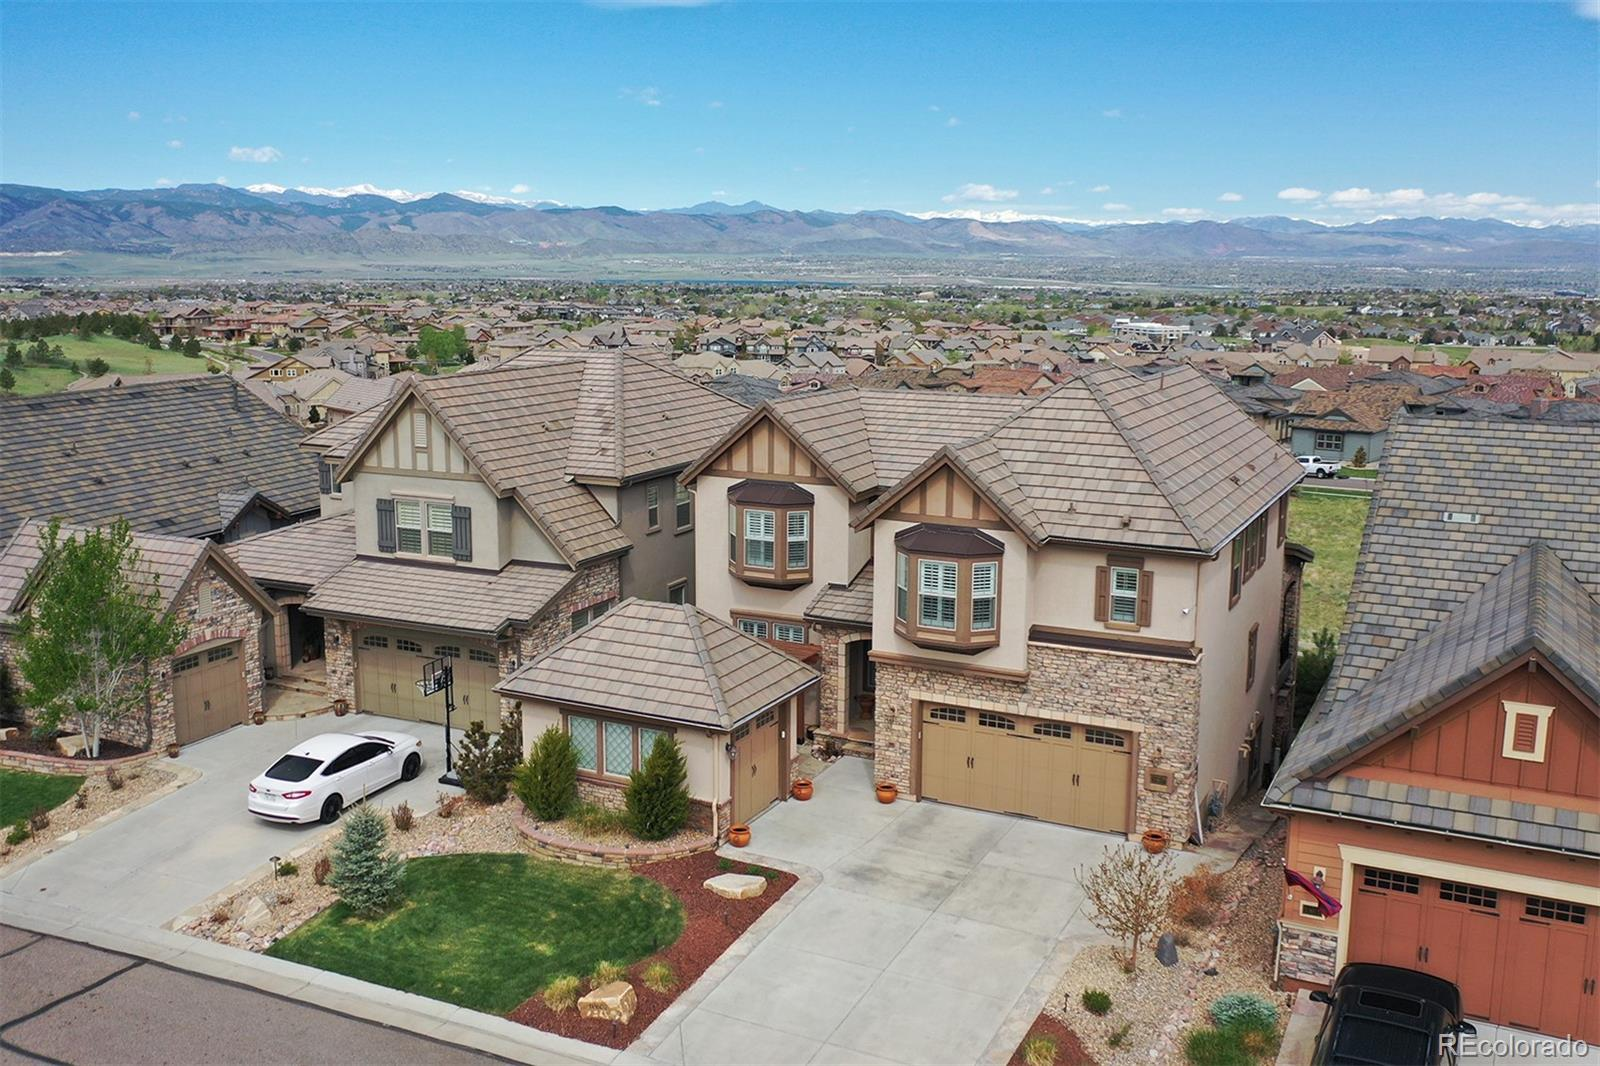 10607 Timberdash Avenue, Highlands Ranch, CO 80126 - Highlands Ranch, CO real estate listing